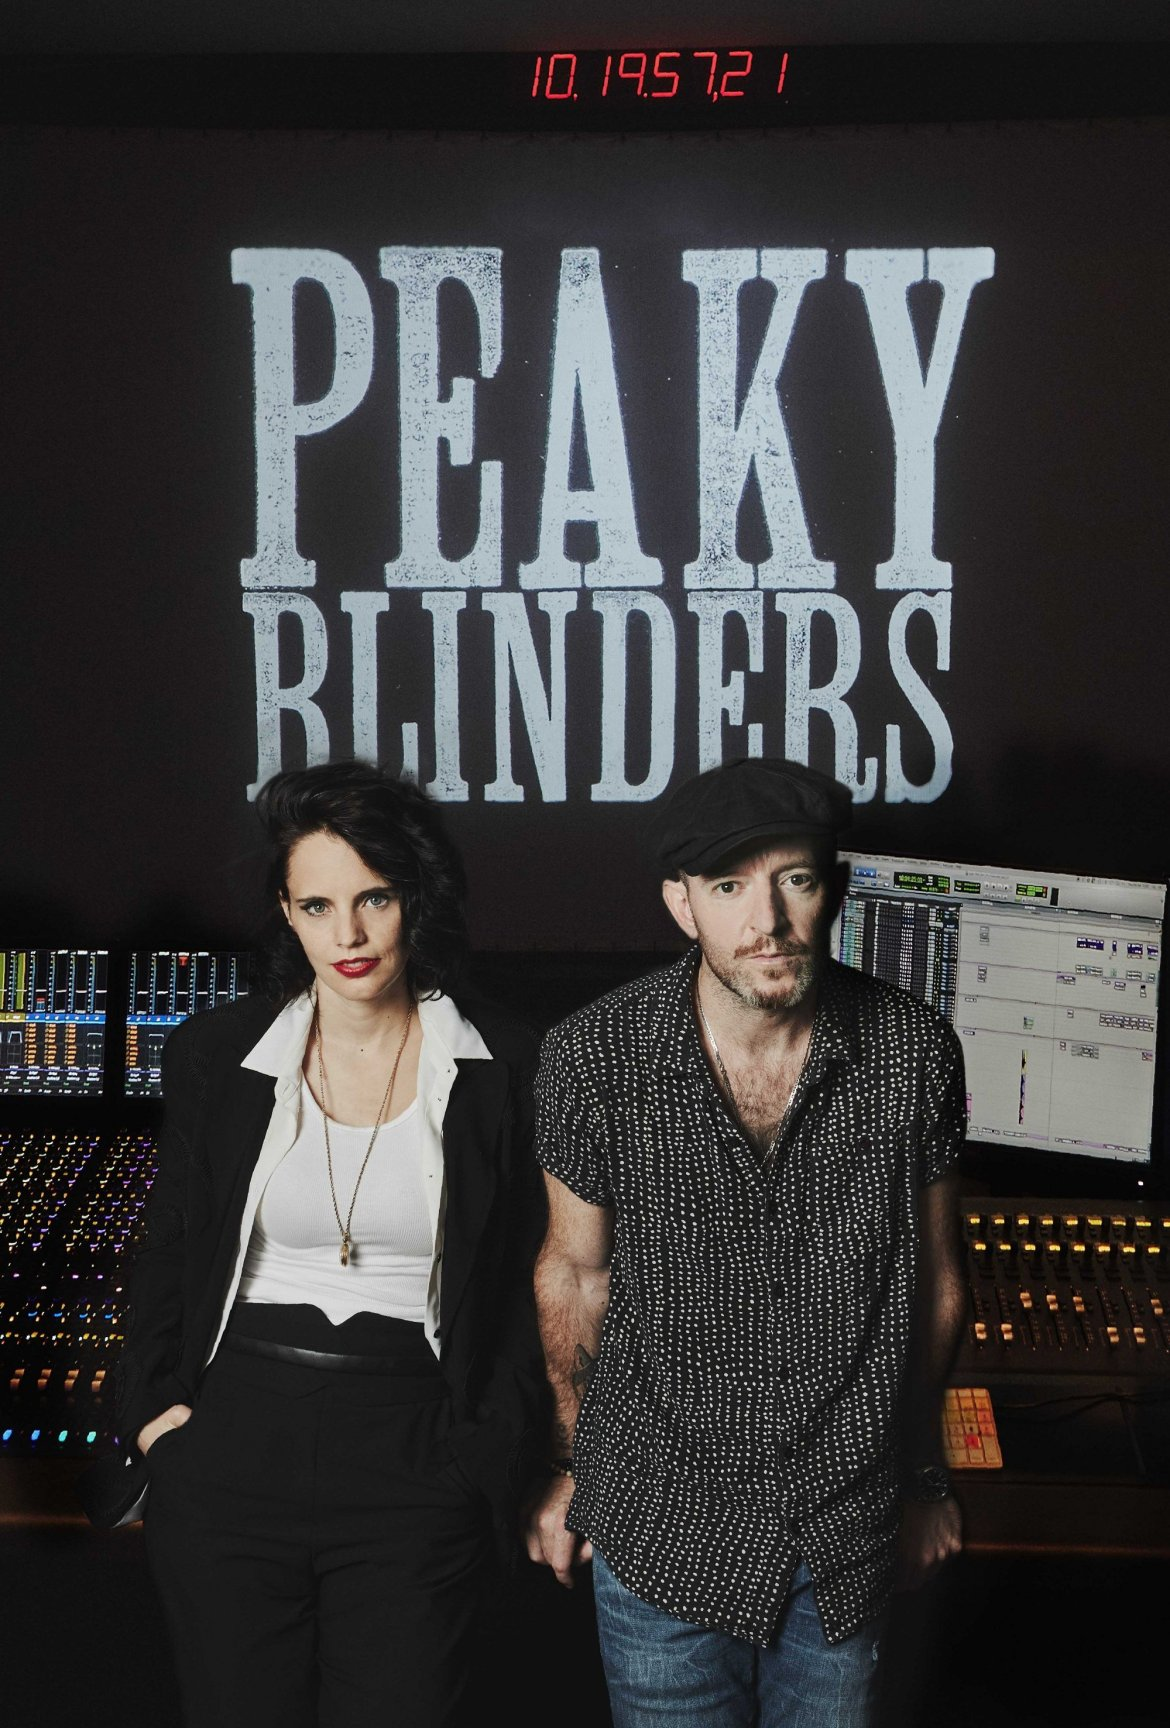 Anna Calvi writes score for next series of Peaky Blinders, what does it signify?